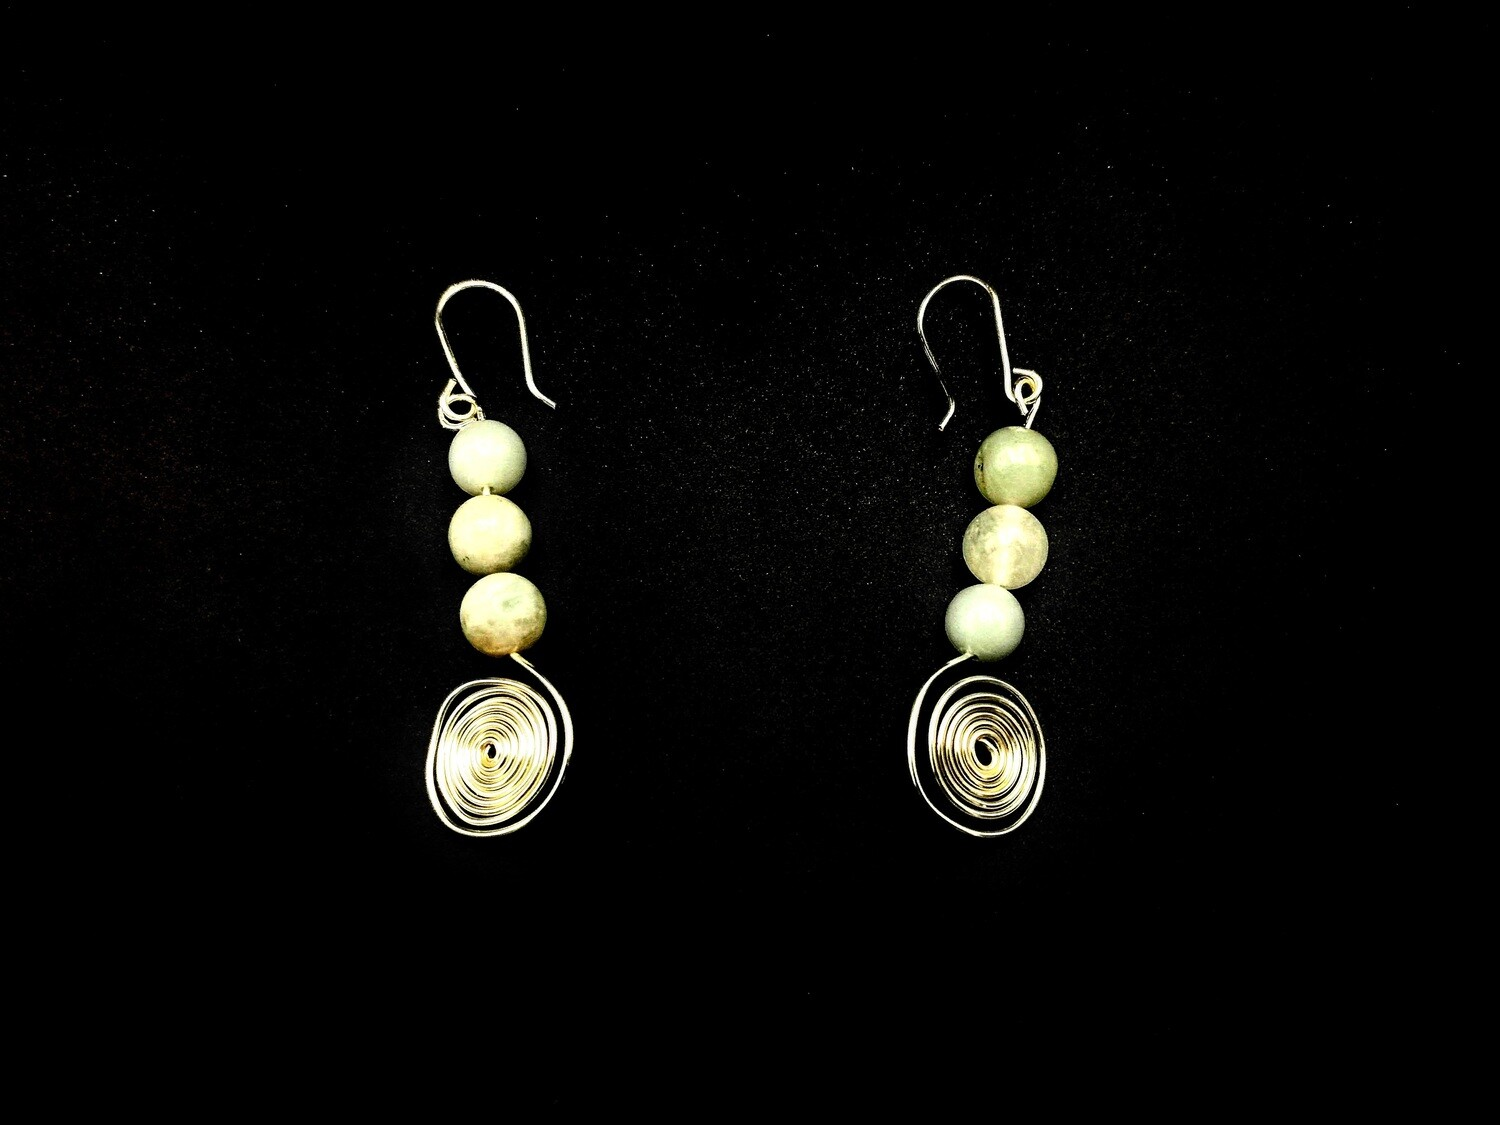 White and Silver Coiled and Beaded Earrings